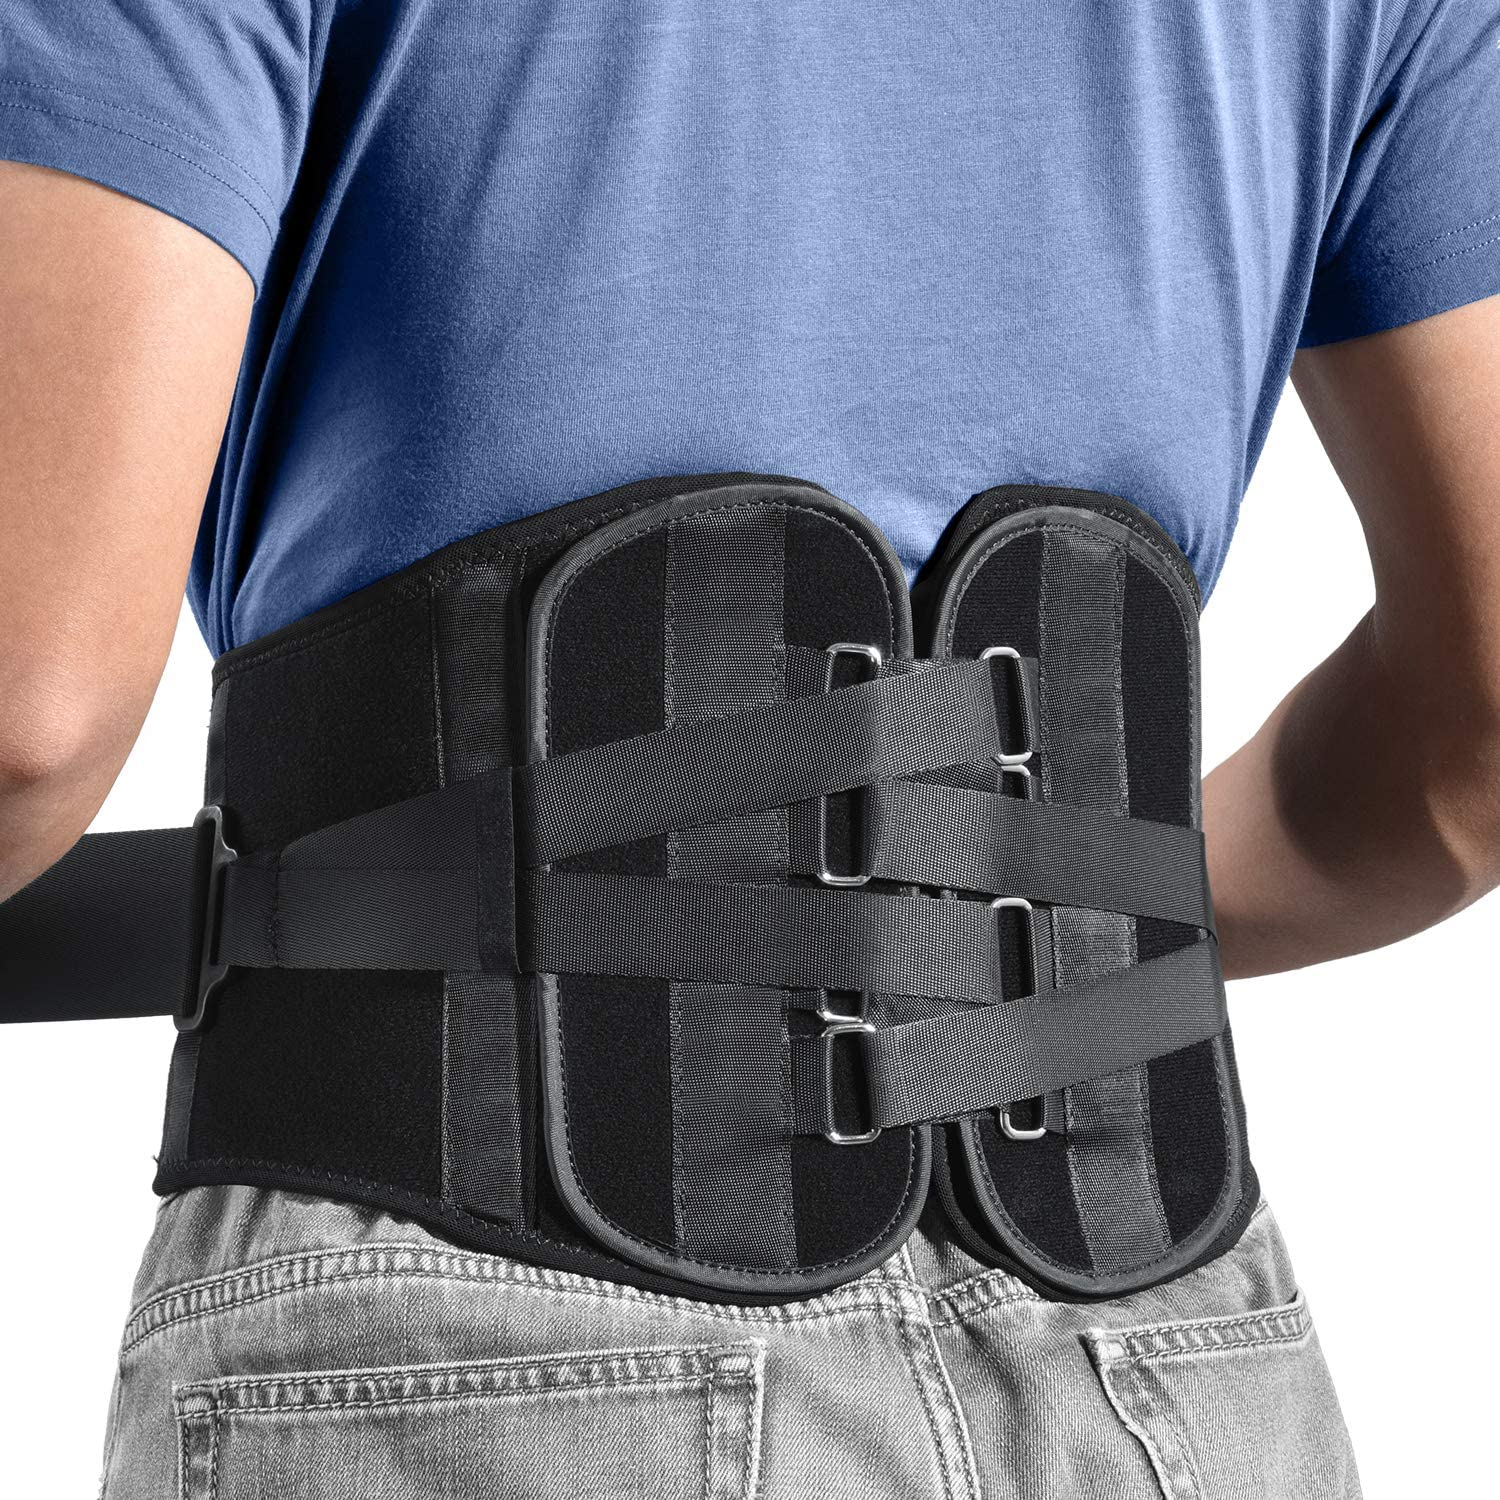 Freetoo Back Braces for Lower 4-TIME Ranking TOP1 with Relief Stron Be super welcome Pain